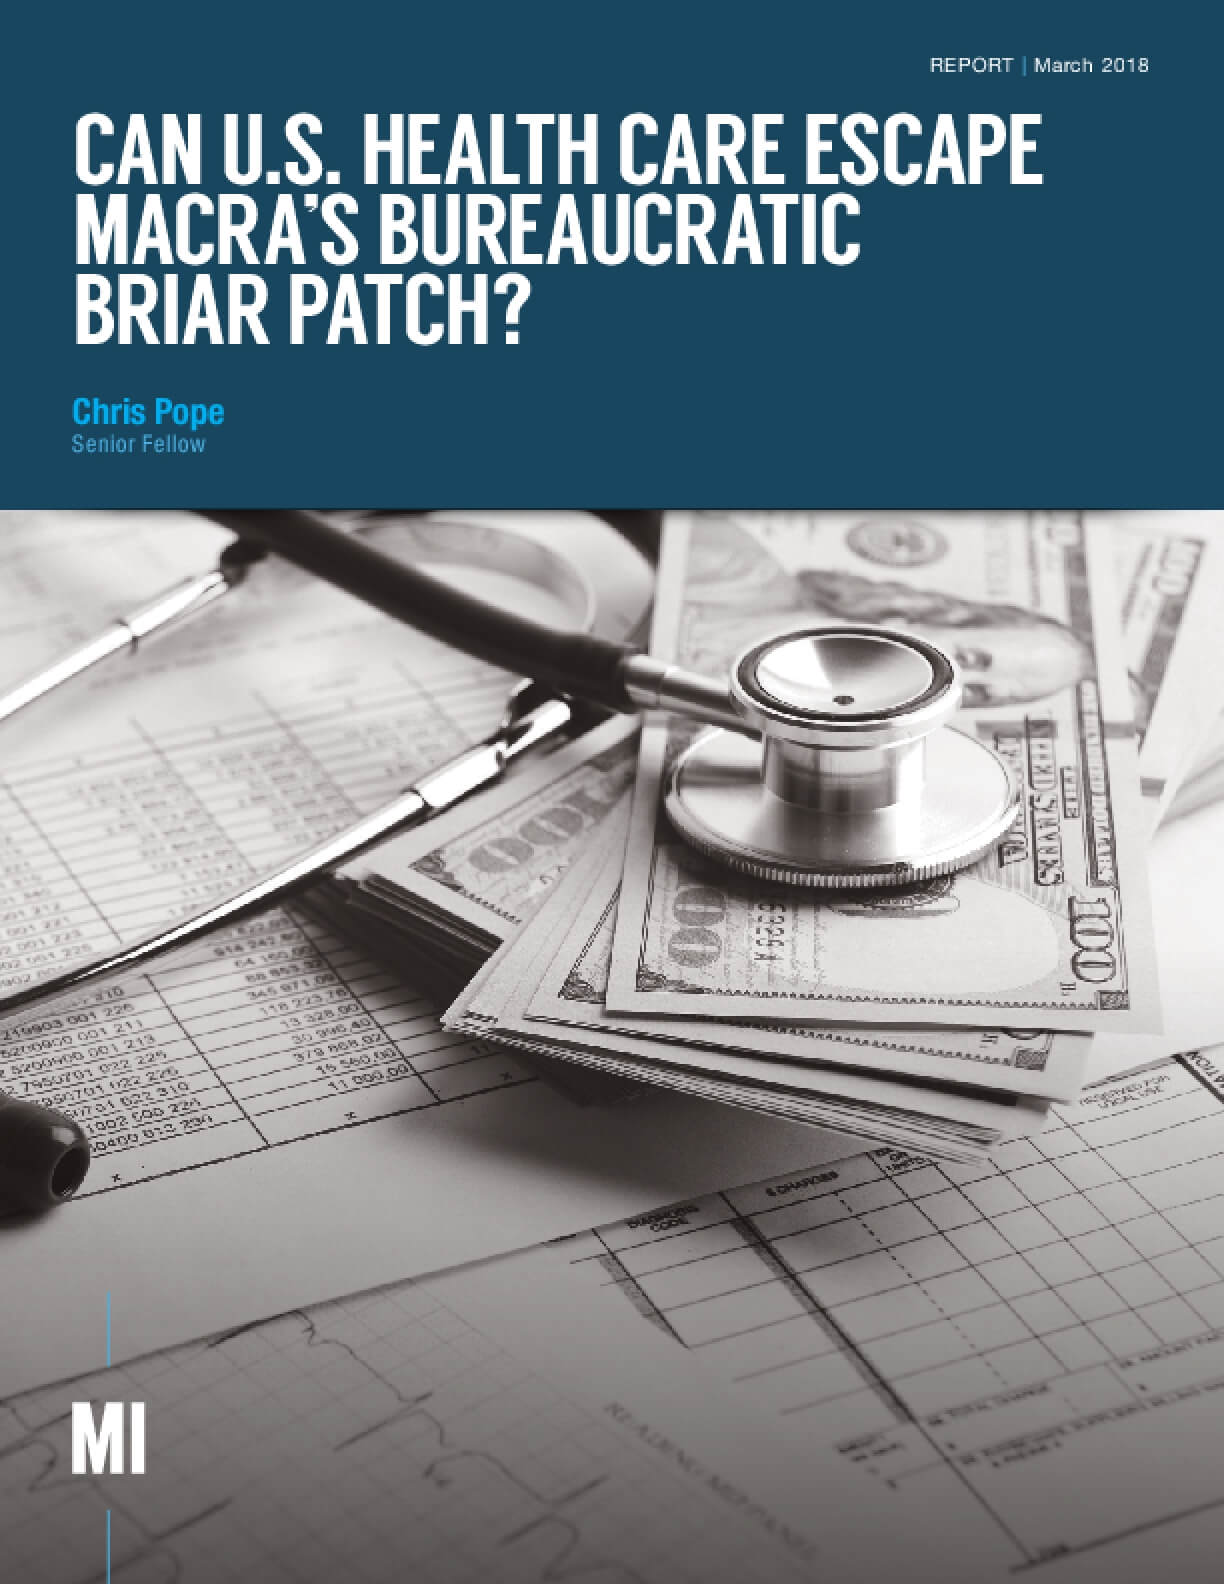 Can U.S. Health Care Escape MACRA's Bureaucratic Briar Patch?